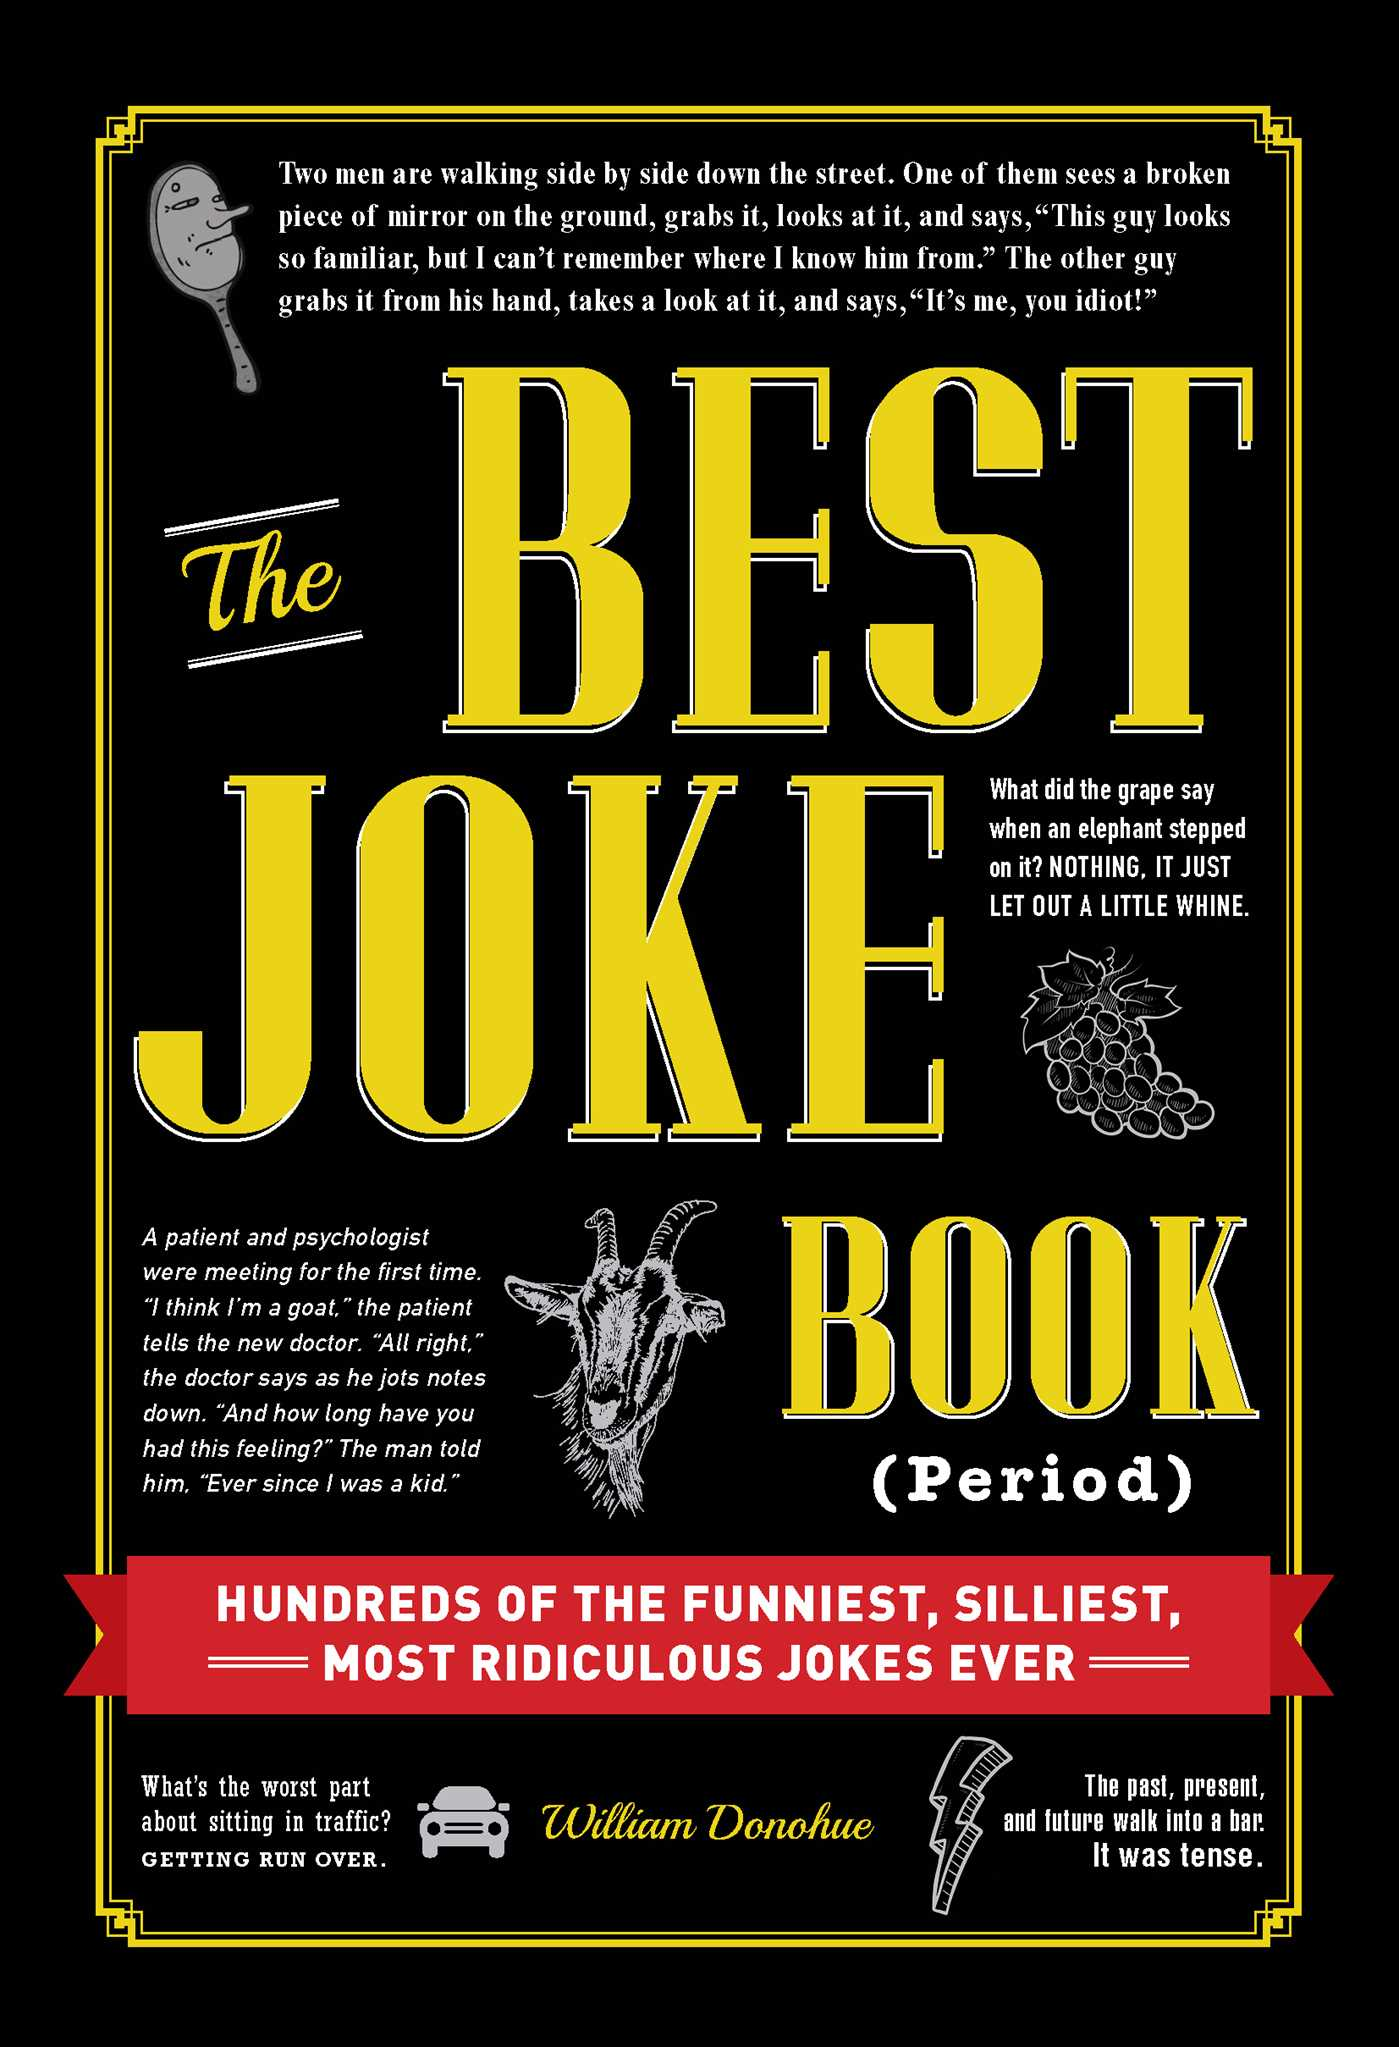 The Best Of The Worst: The Best Joke Book (Period)